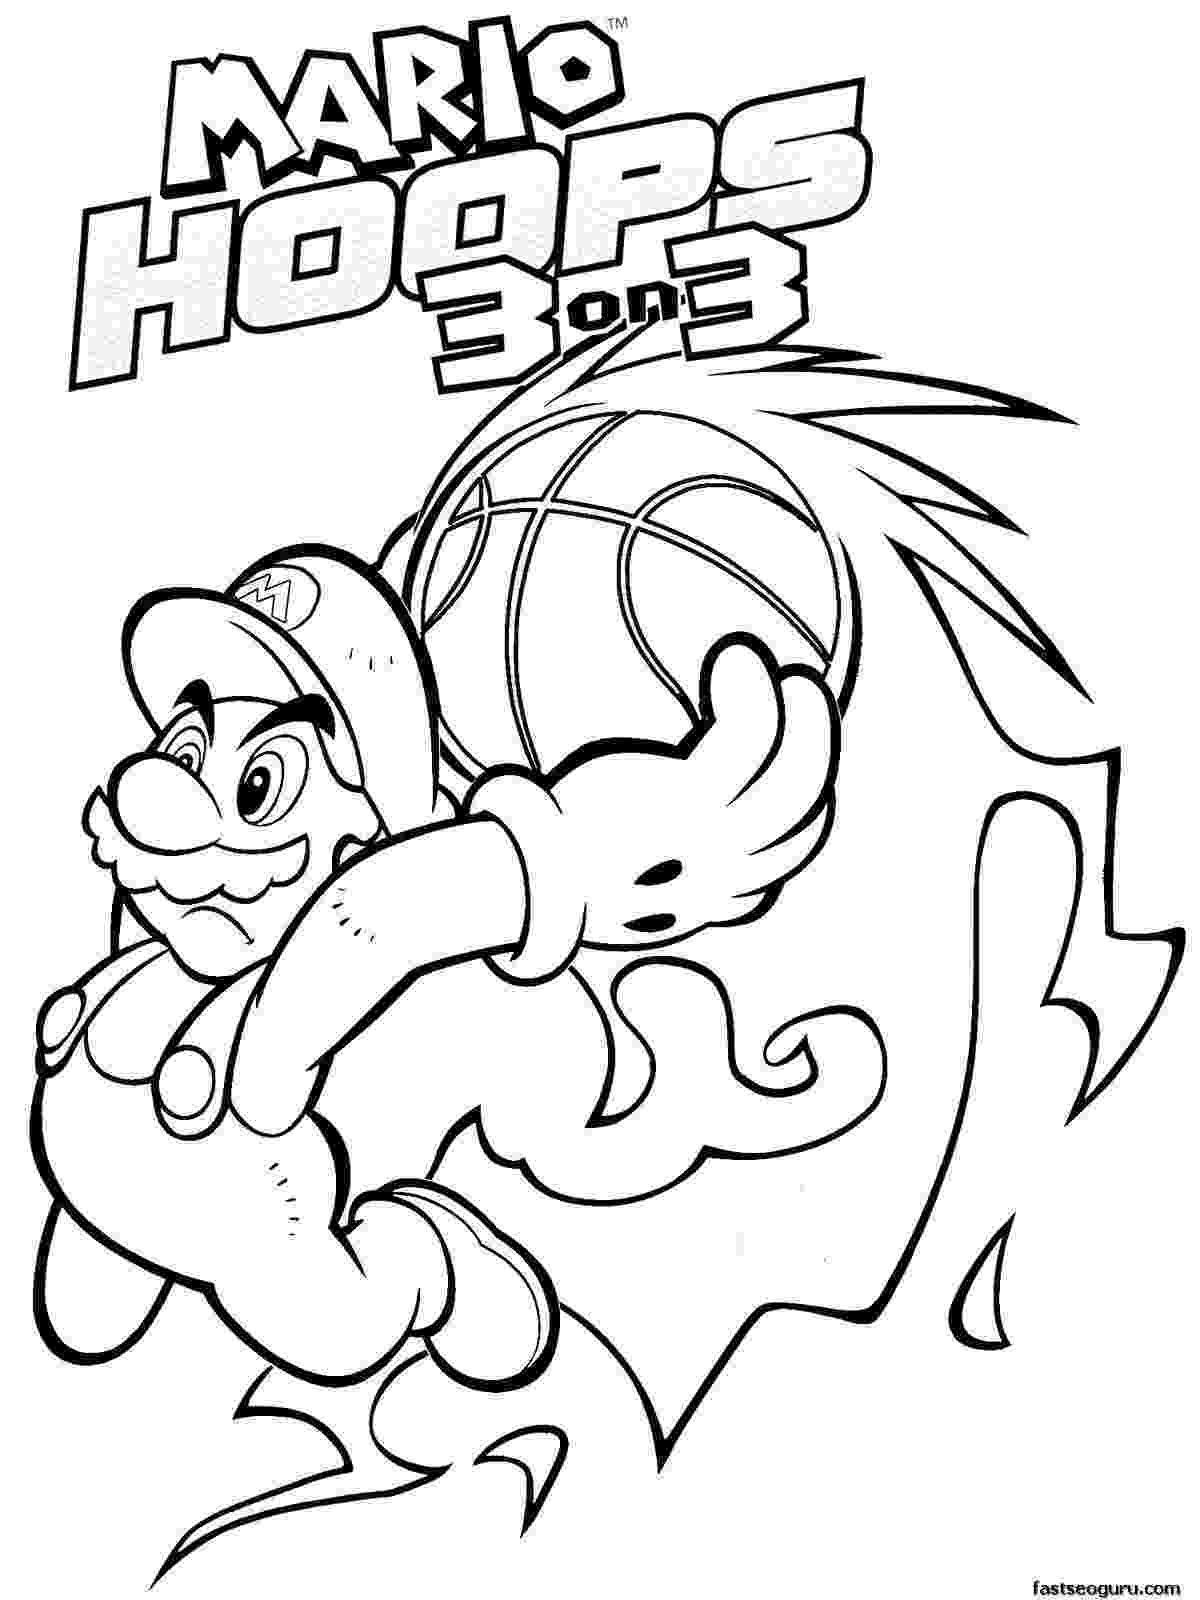 mario 3d world coloring pages coloring pages mario 3d world coloring home pages coloring 3d mario world